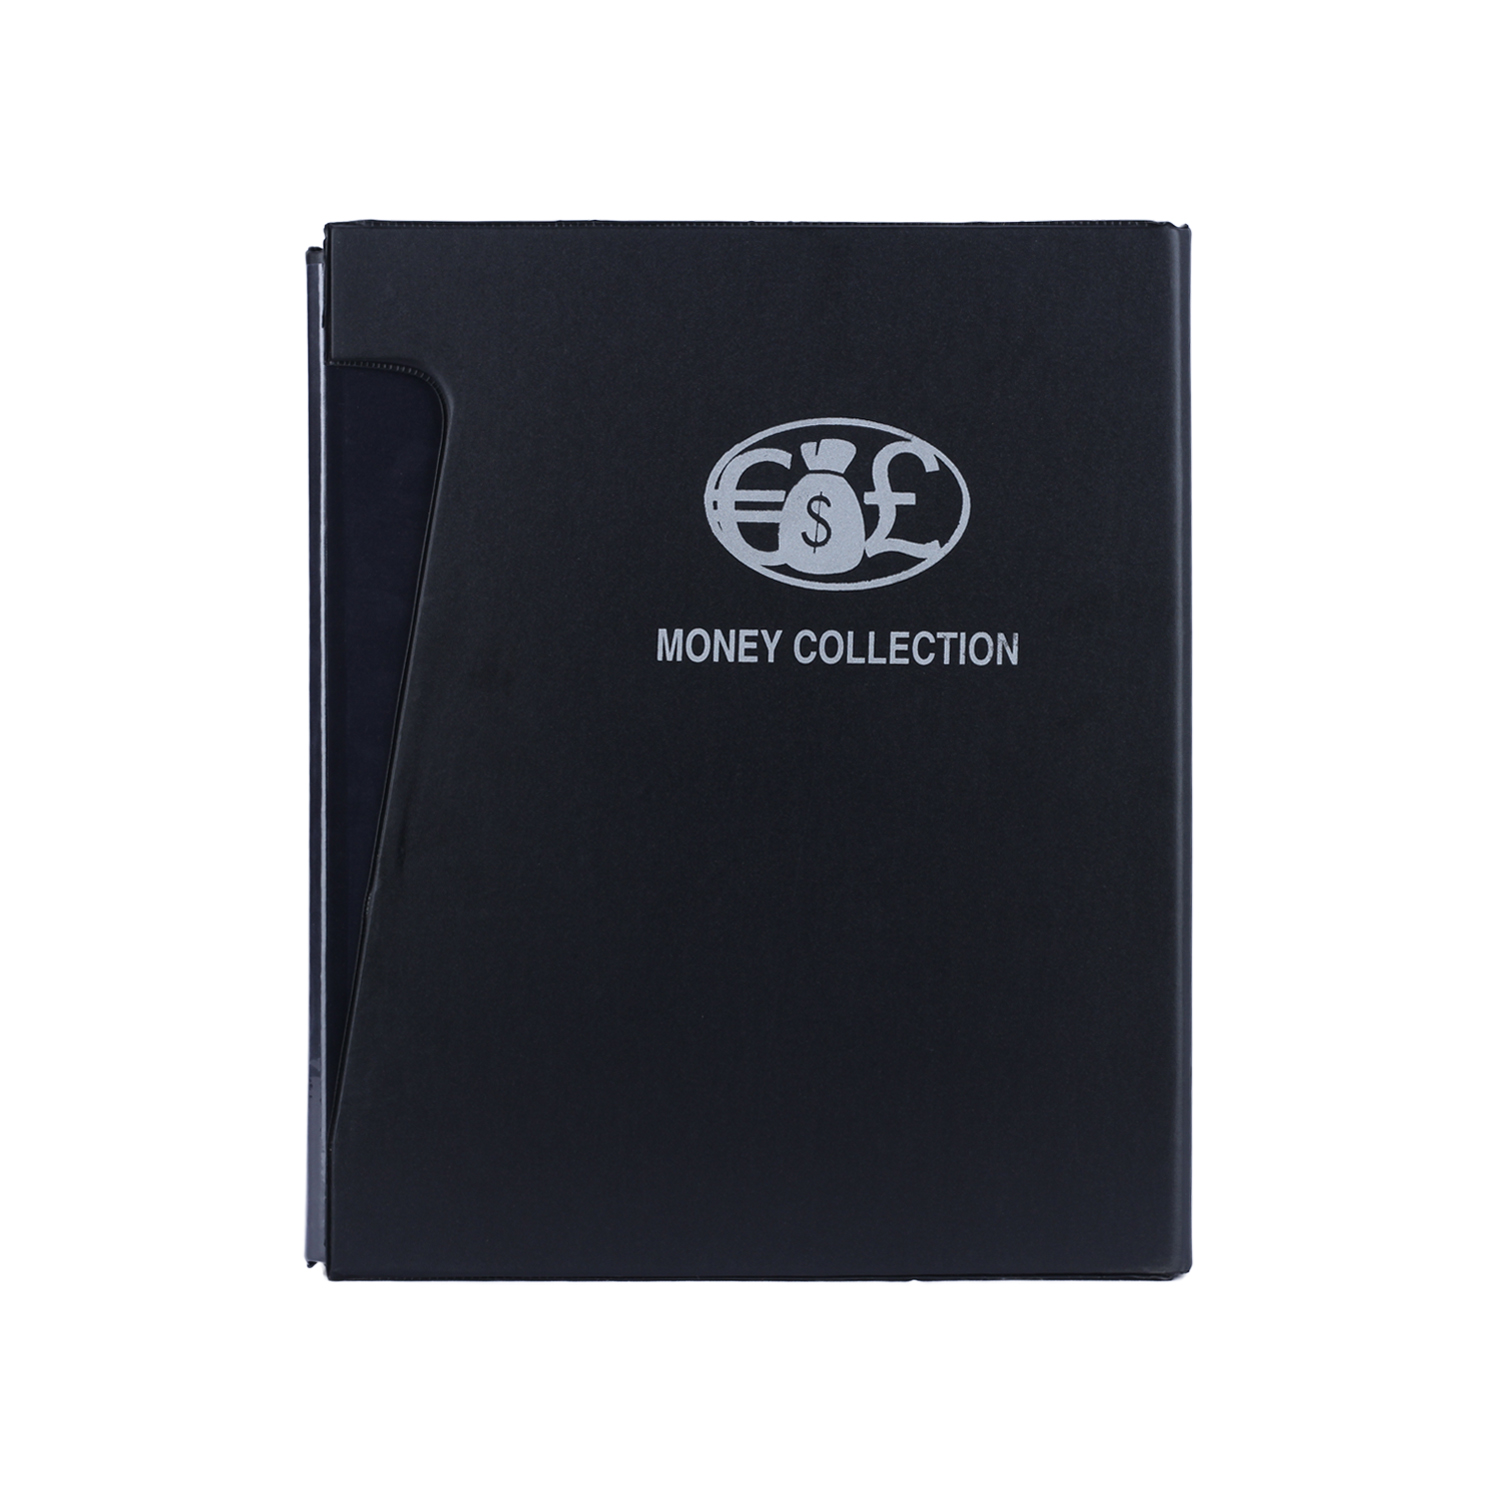 Premium Coin Album with Coin Holders - Black